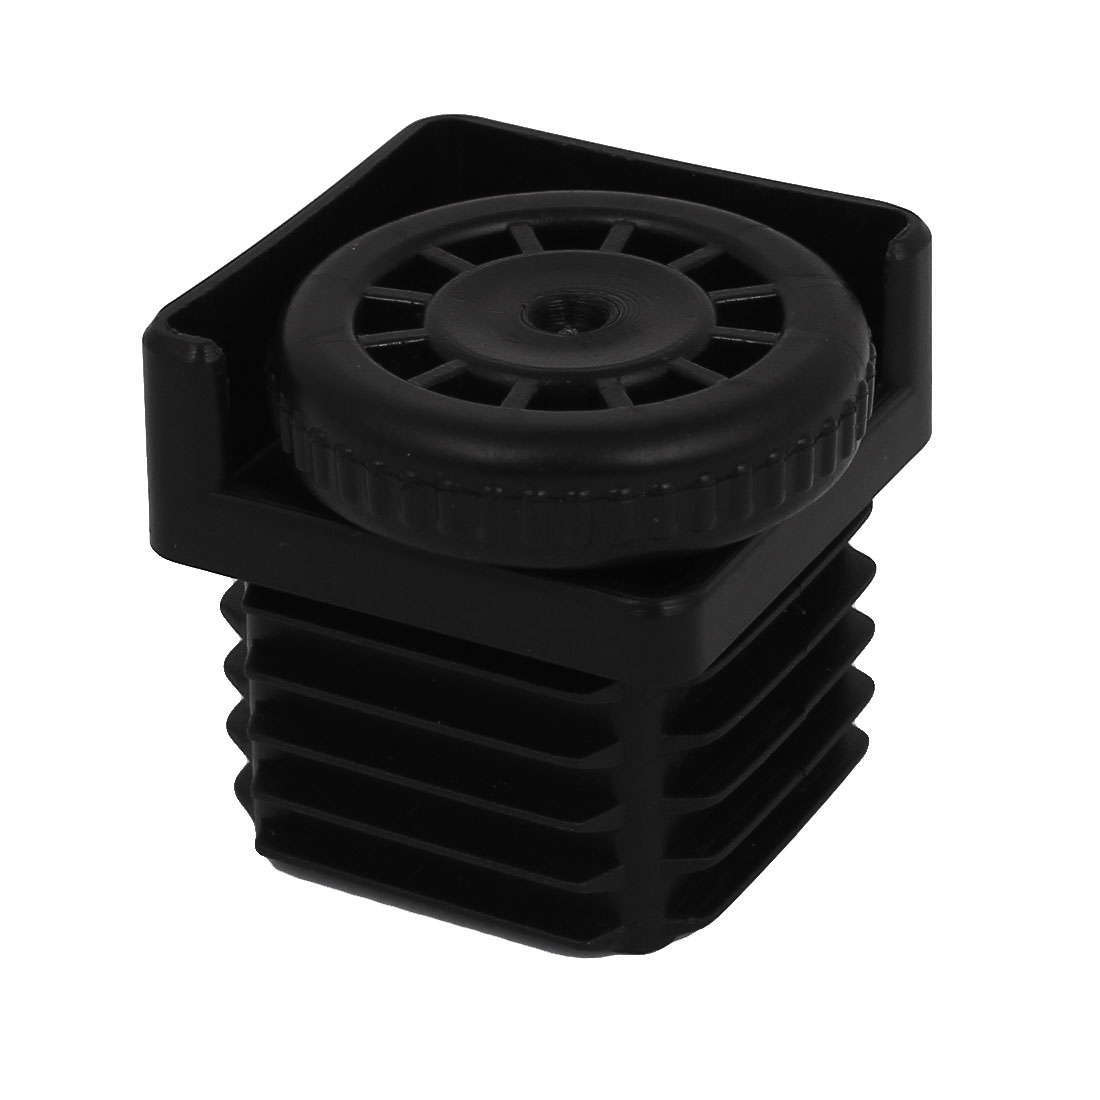 8mm Thread Dia. 40mm Base Adjustable Plastic Square Foot Pad Black for Furniture